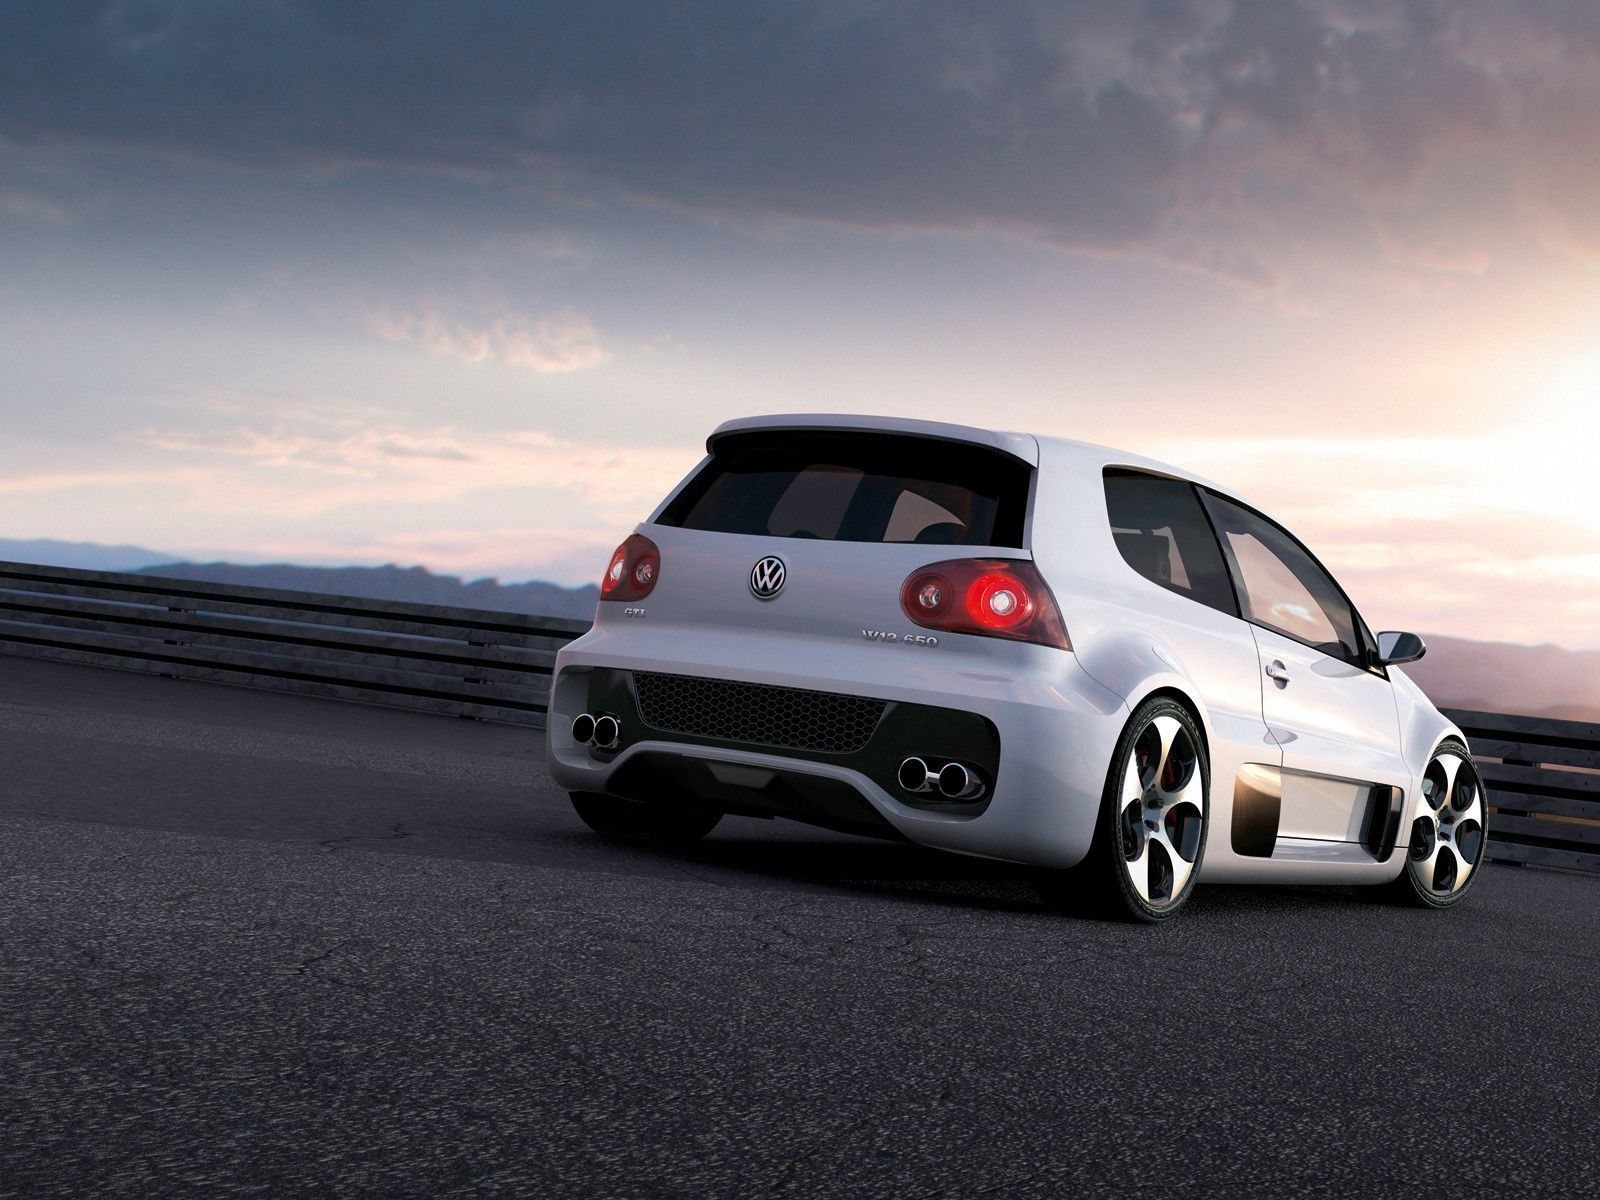 Search Results For Volkswagen Gti Wallpaper Hd Adorable Wallpapers